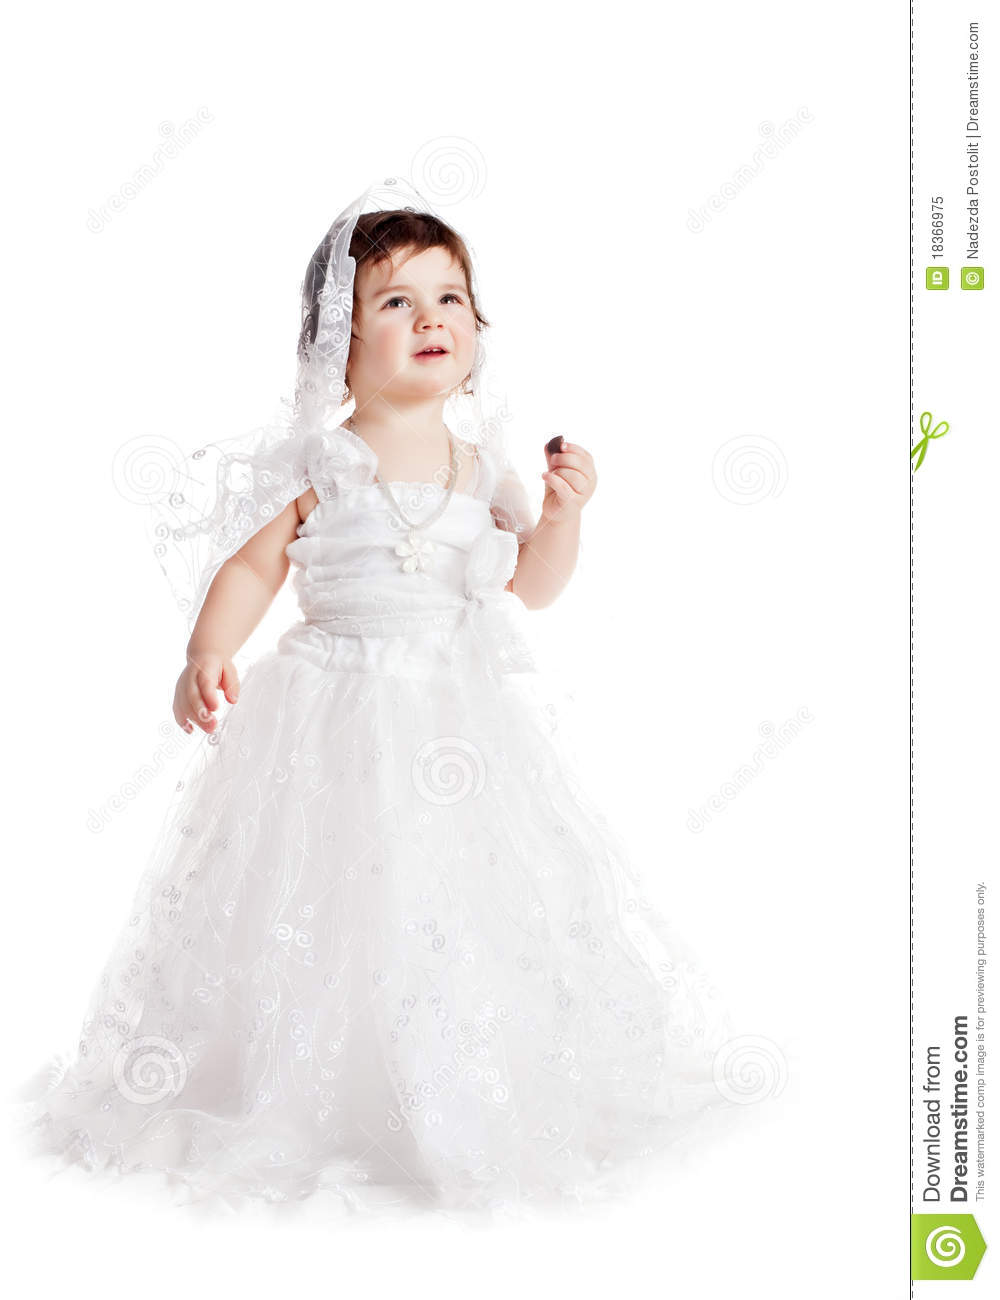 toddler wedding dresses baby in a white wedding dress stock image image 8020